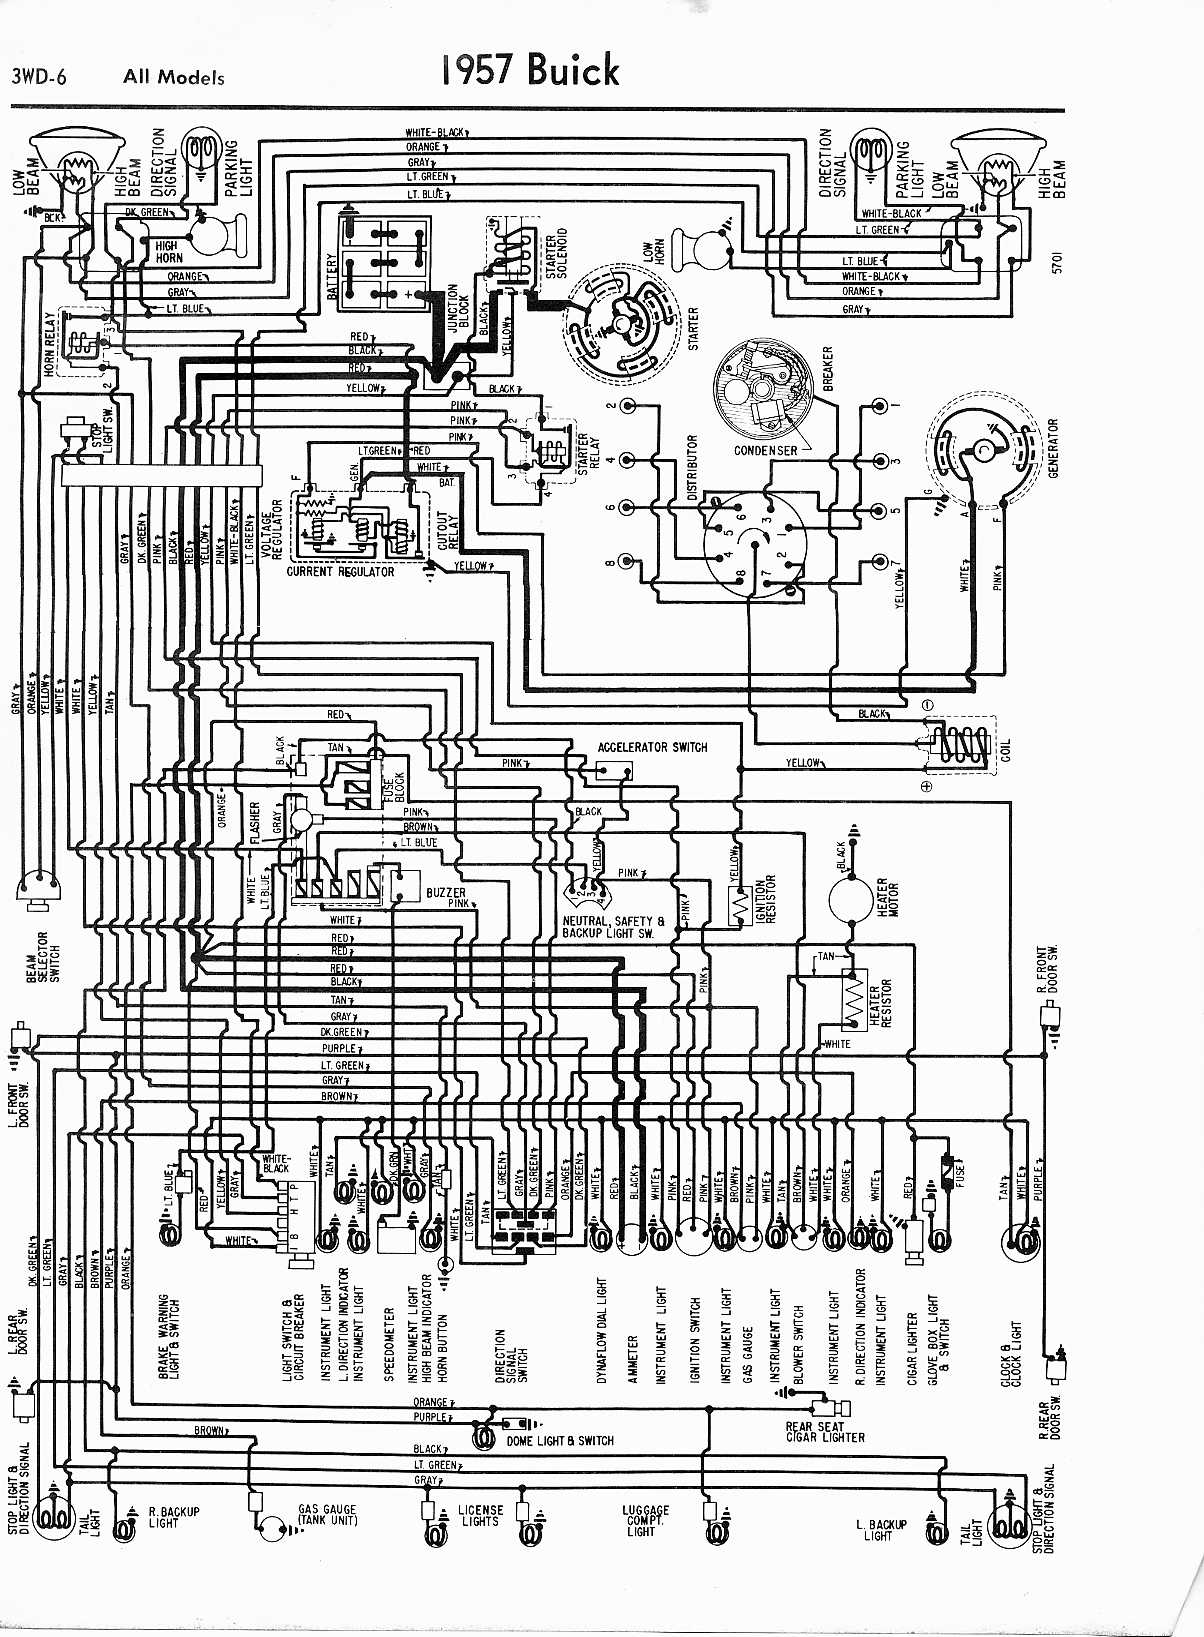 Buick Wiring Diagrams 1957 1965 Electrical Diagram For 1960 Chevrolet Corvair All Models